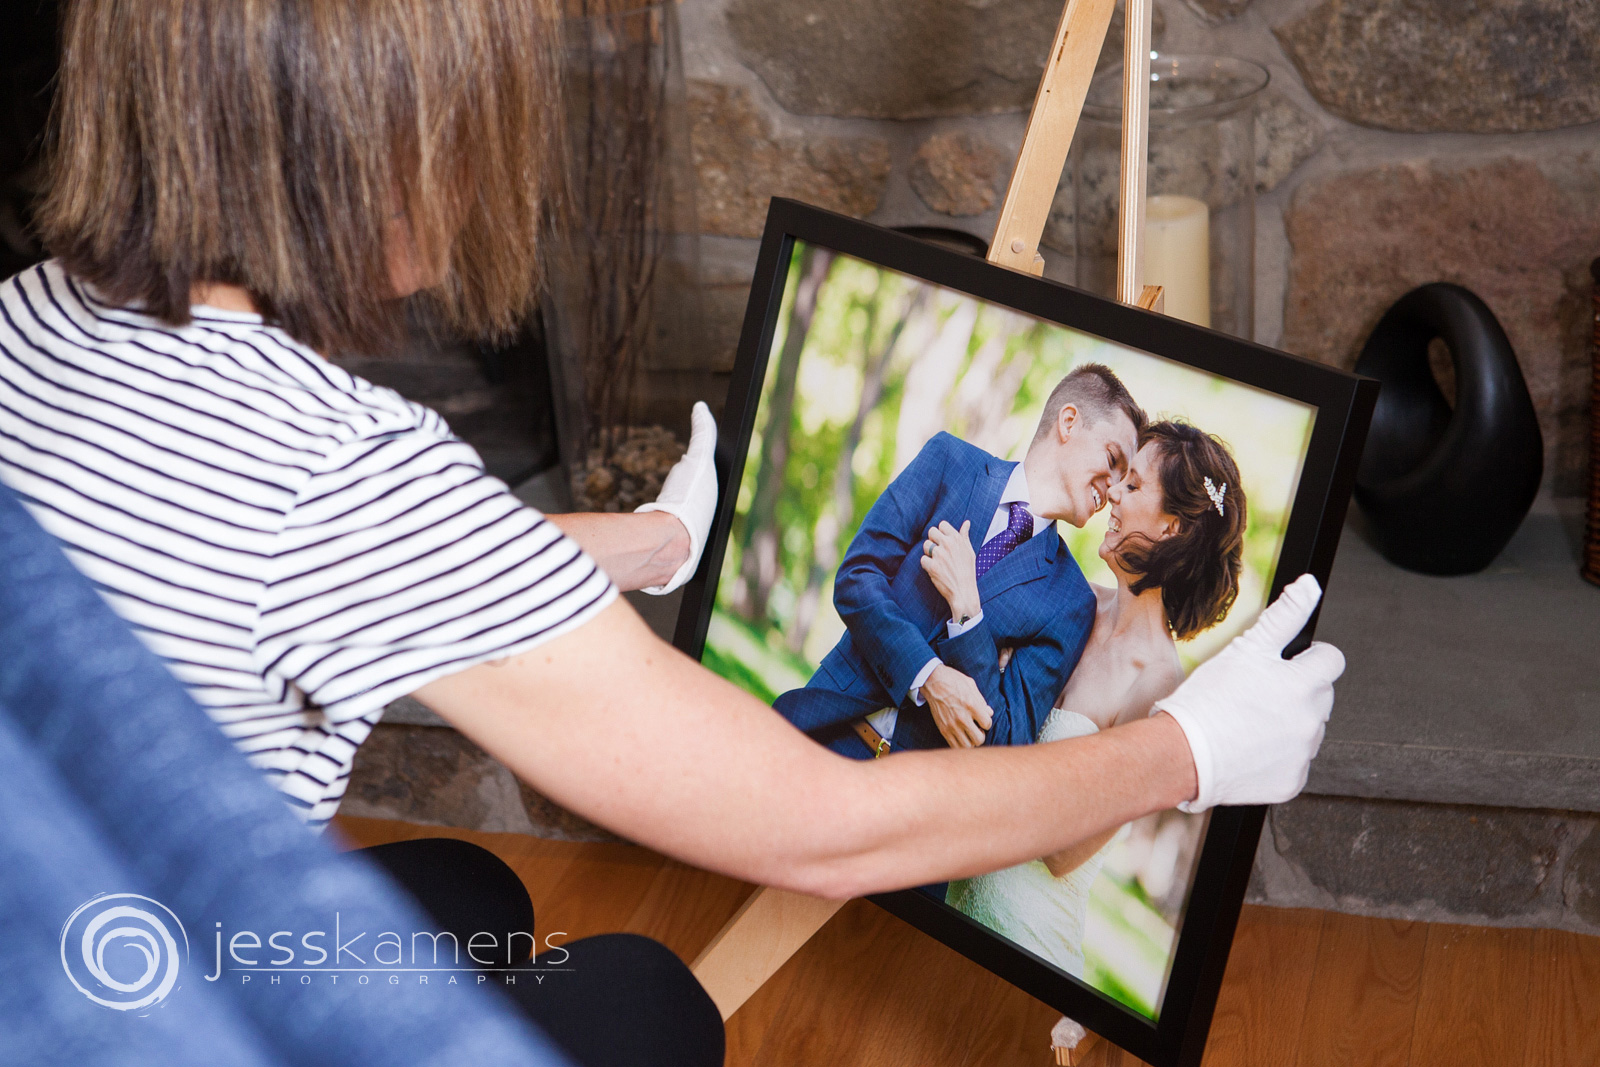 a bride admires her fine art archival wedding portrait from her wedding day in a black frame while touching it with gloves